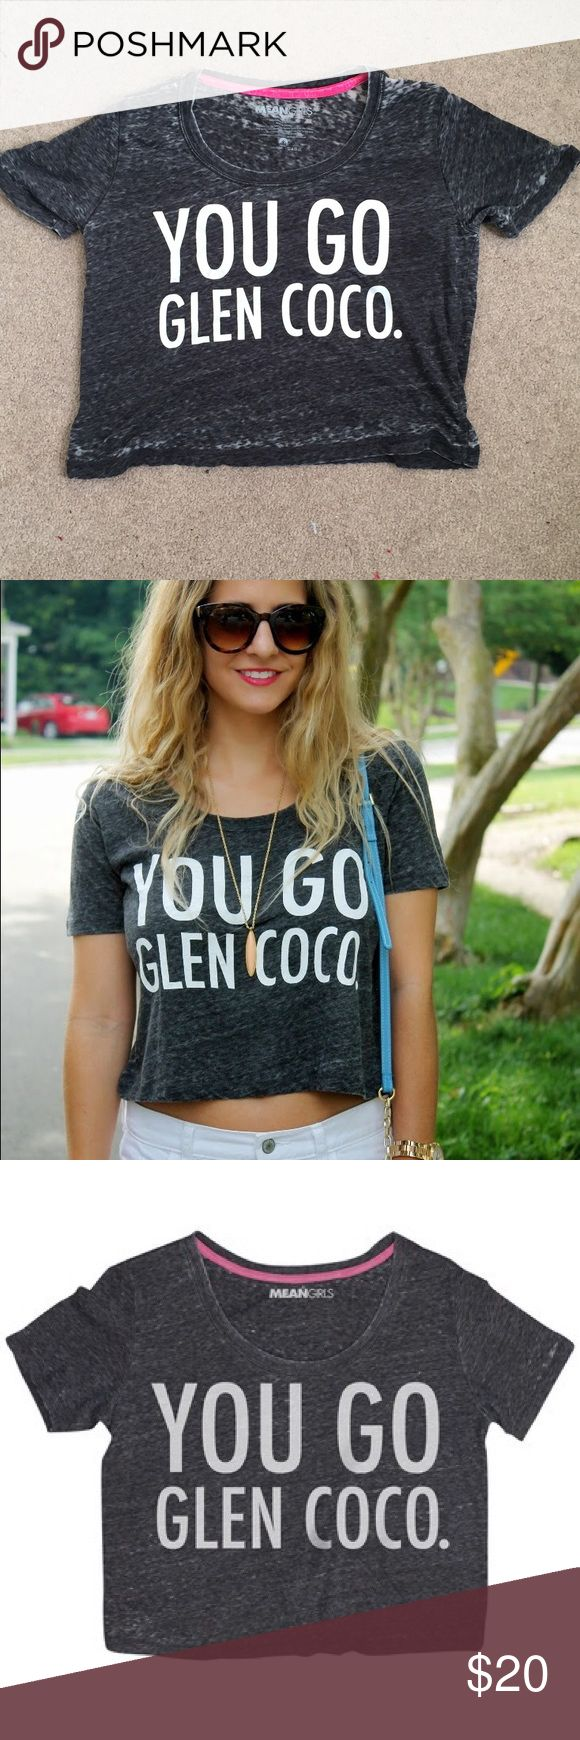 You Go Glen Coco! Crop Top Shirt You Go Glen Coco! Mean Girl crop top shirt. Gently worn and in good condition. Make me an offer! Target Tops Crop Tops